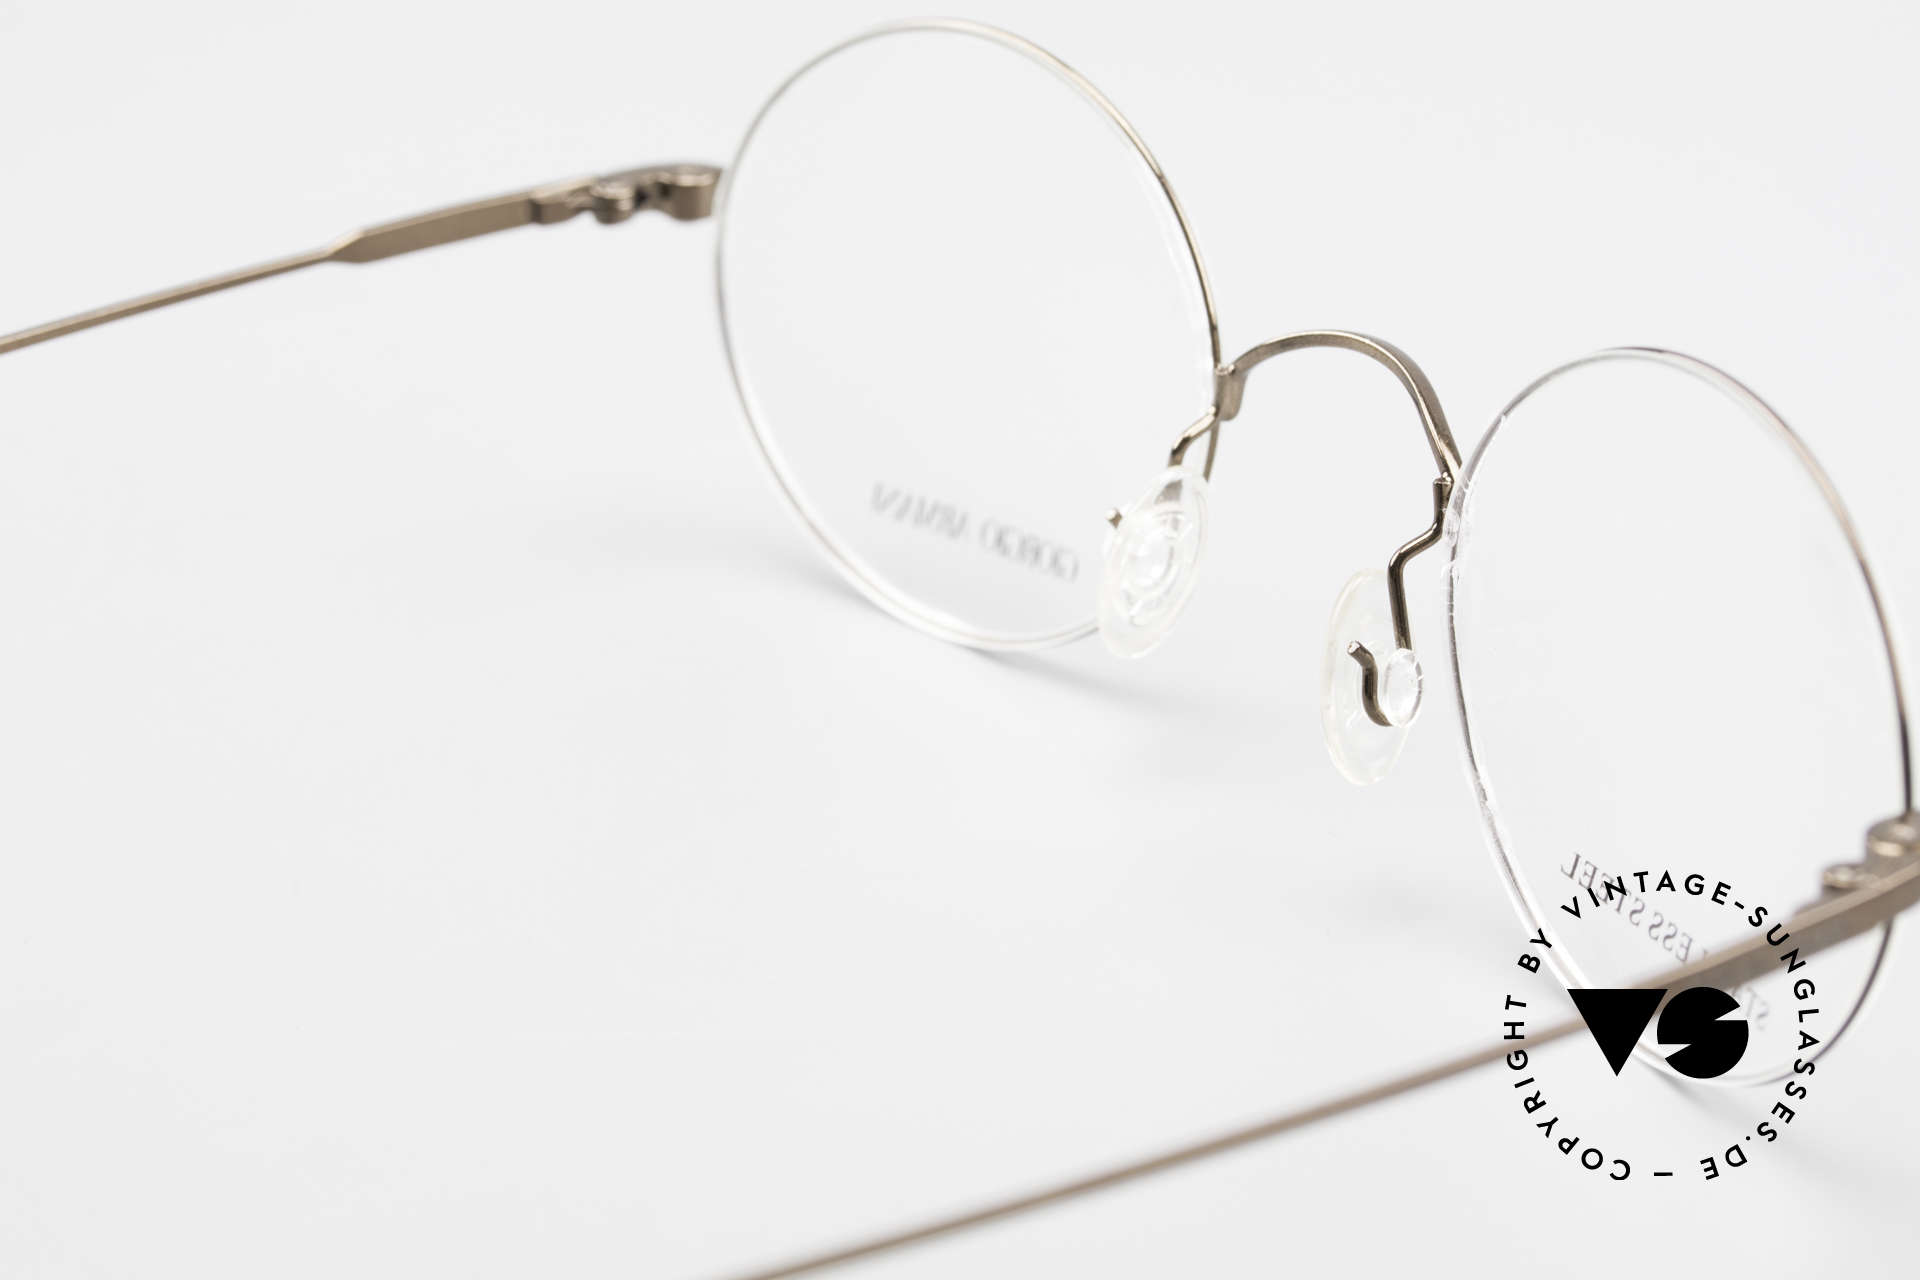 Giorgio Armani 348 Round Vintage 90's Eyeglasses, the frame fits lenses of any kind (optical or sun lenses), Made for Men and Women